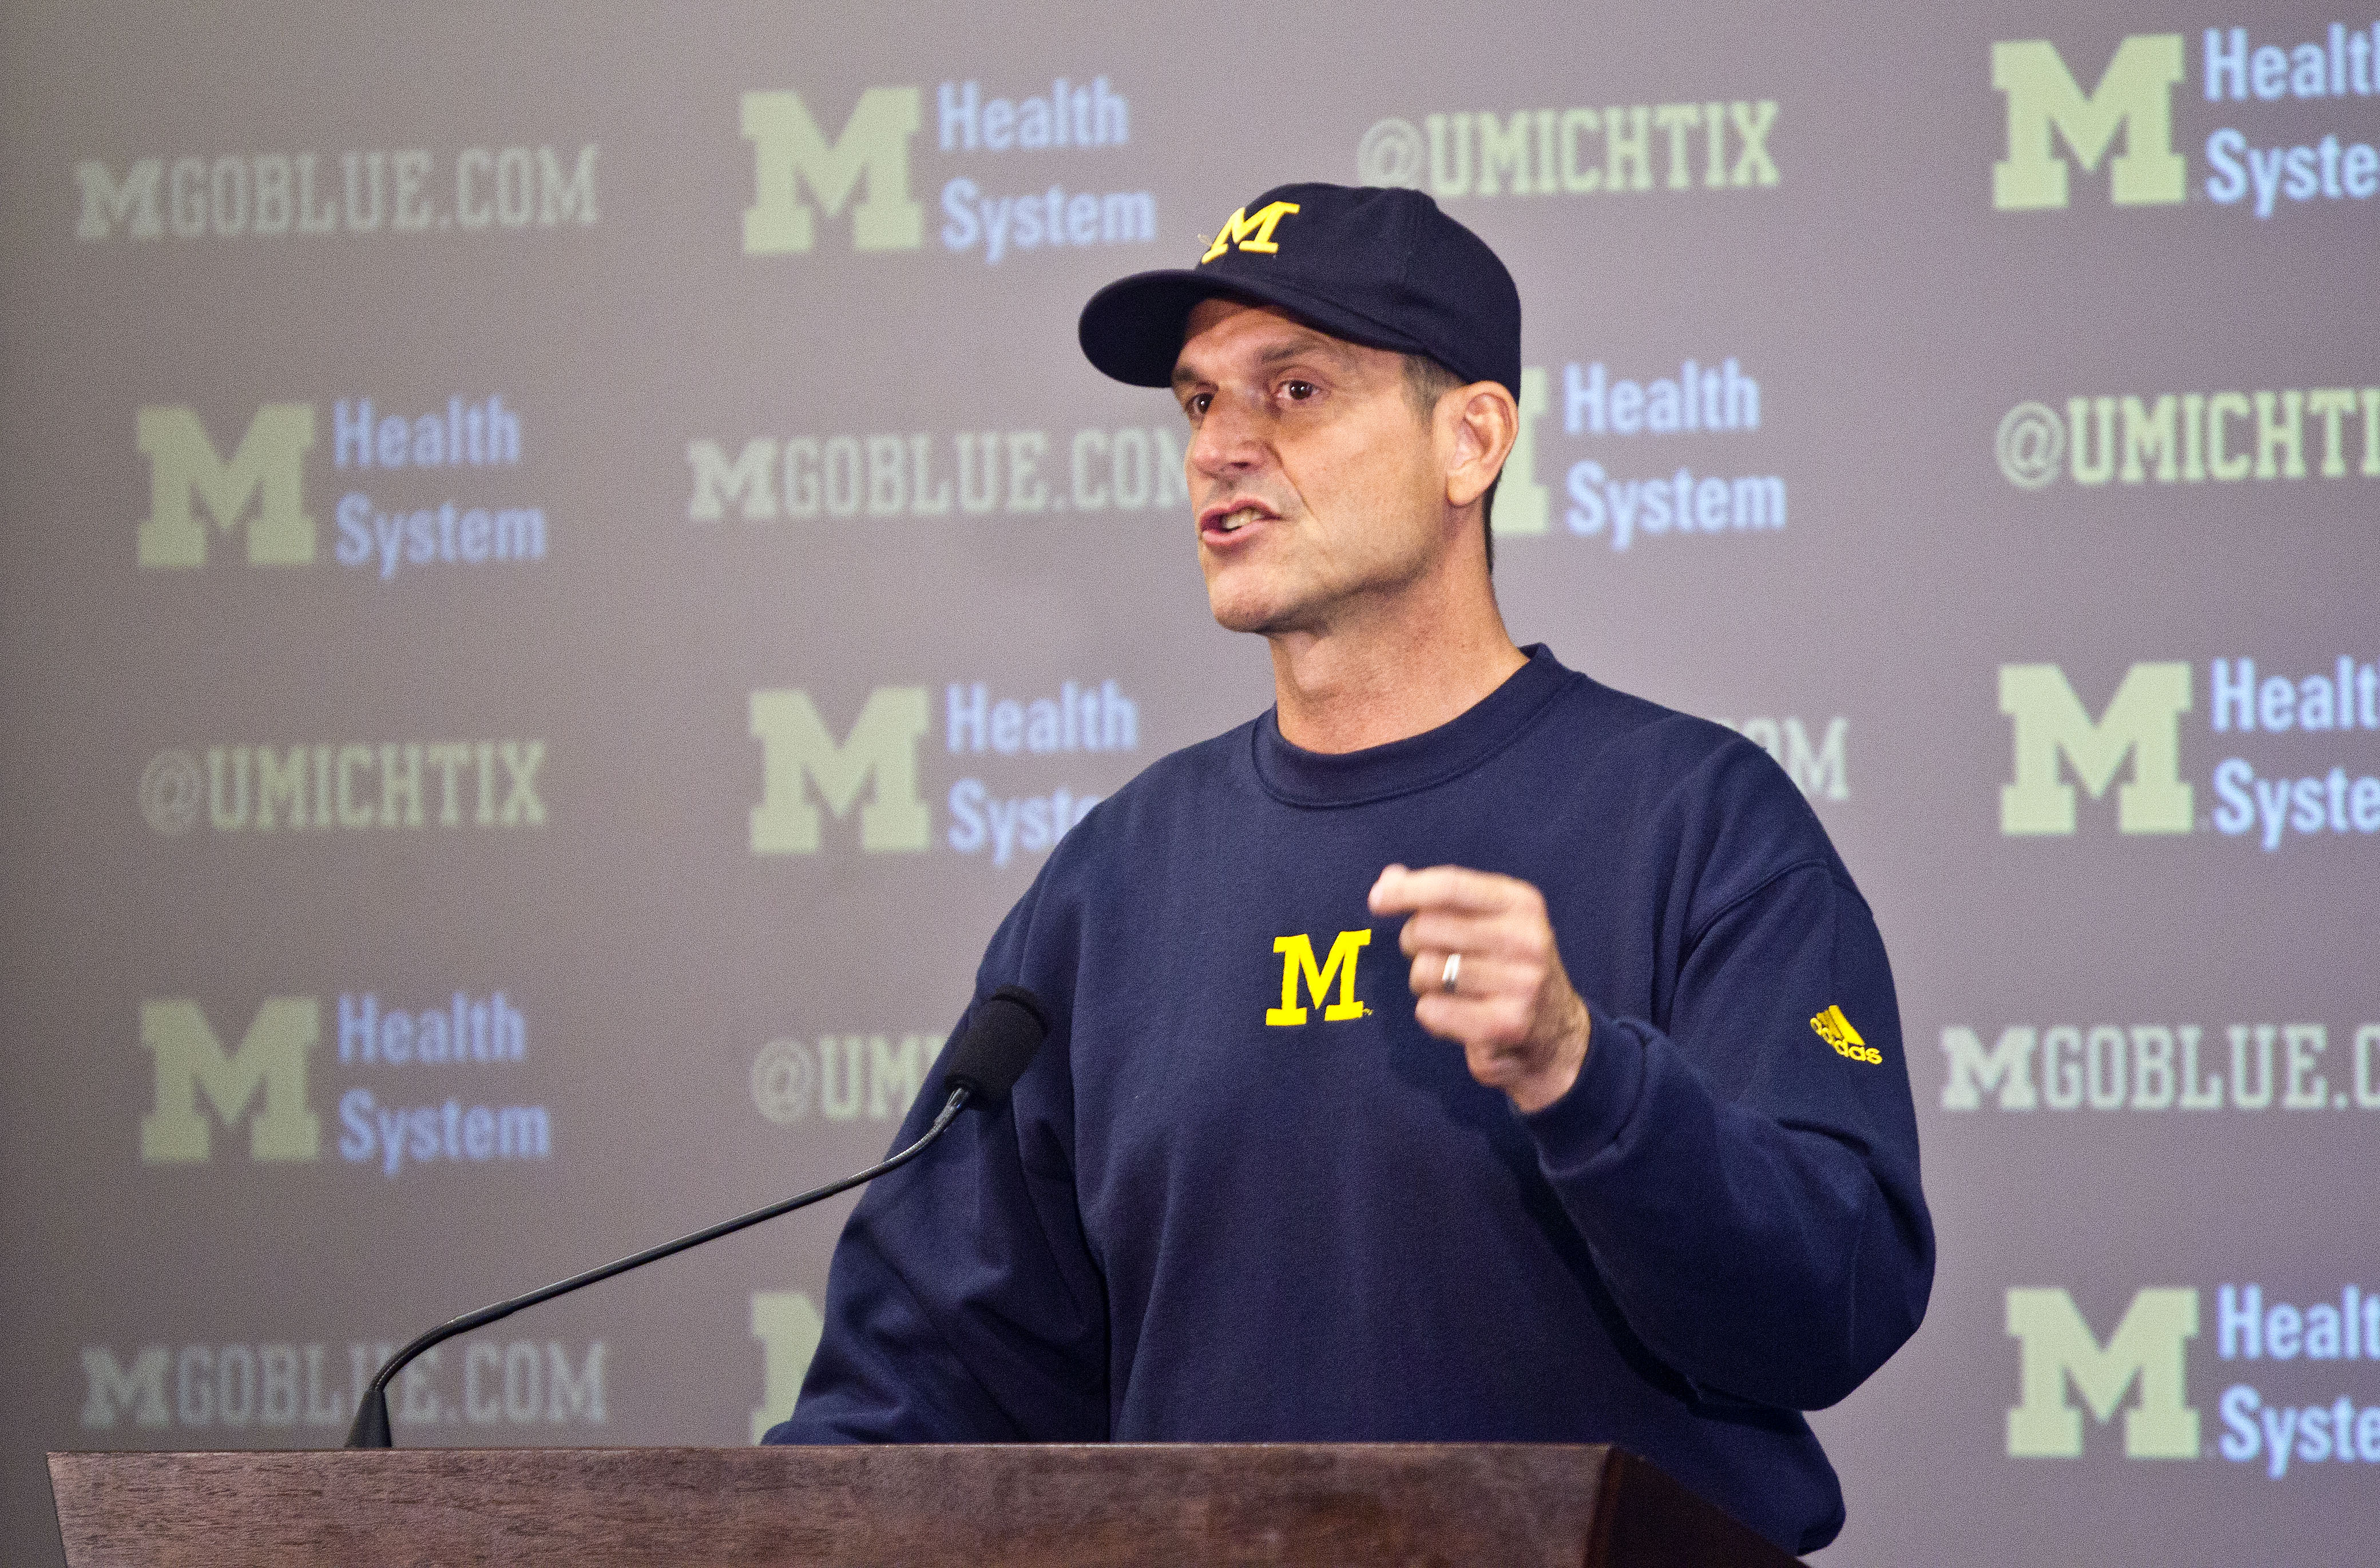 FILE - In this Aug. 6, 2015, file photo, Michigan head coach Jim Harbaugh speaks at a press conference during the NCAA college football team's annual media day in Ann Arbor, Mich. Jim Harbaugh has come up with another way to get in the spotlight. Michigan